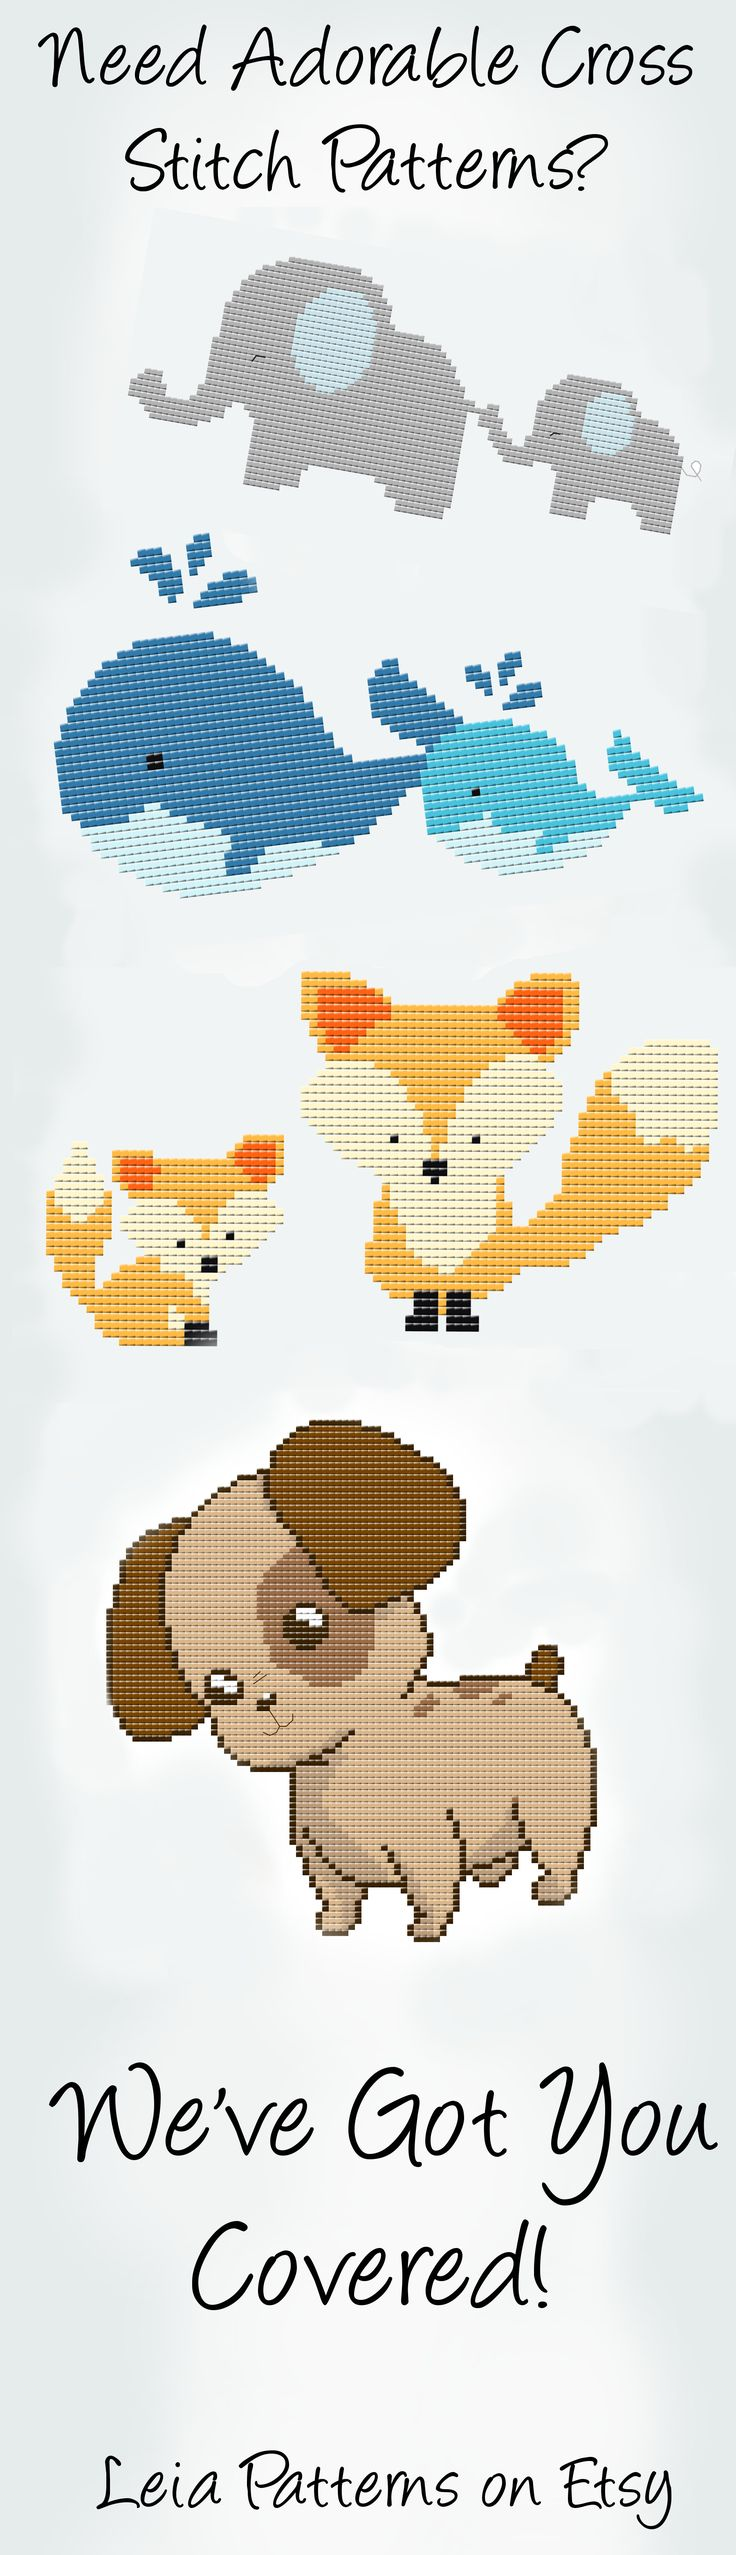 Find Cute Cross Stitch Patterns at LeiaPatterns on Etsy! Elephants, Whales, Foxes, Puppies, and much more! These counted cross stitch patterns are simple and perfect for nurseries, baby decor, or for everyday cross stitching! https://www.etsy.com/shop/LeiaPatterns?ref=l2-shopheader-name More